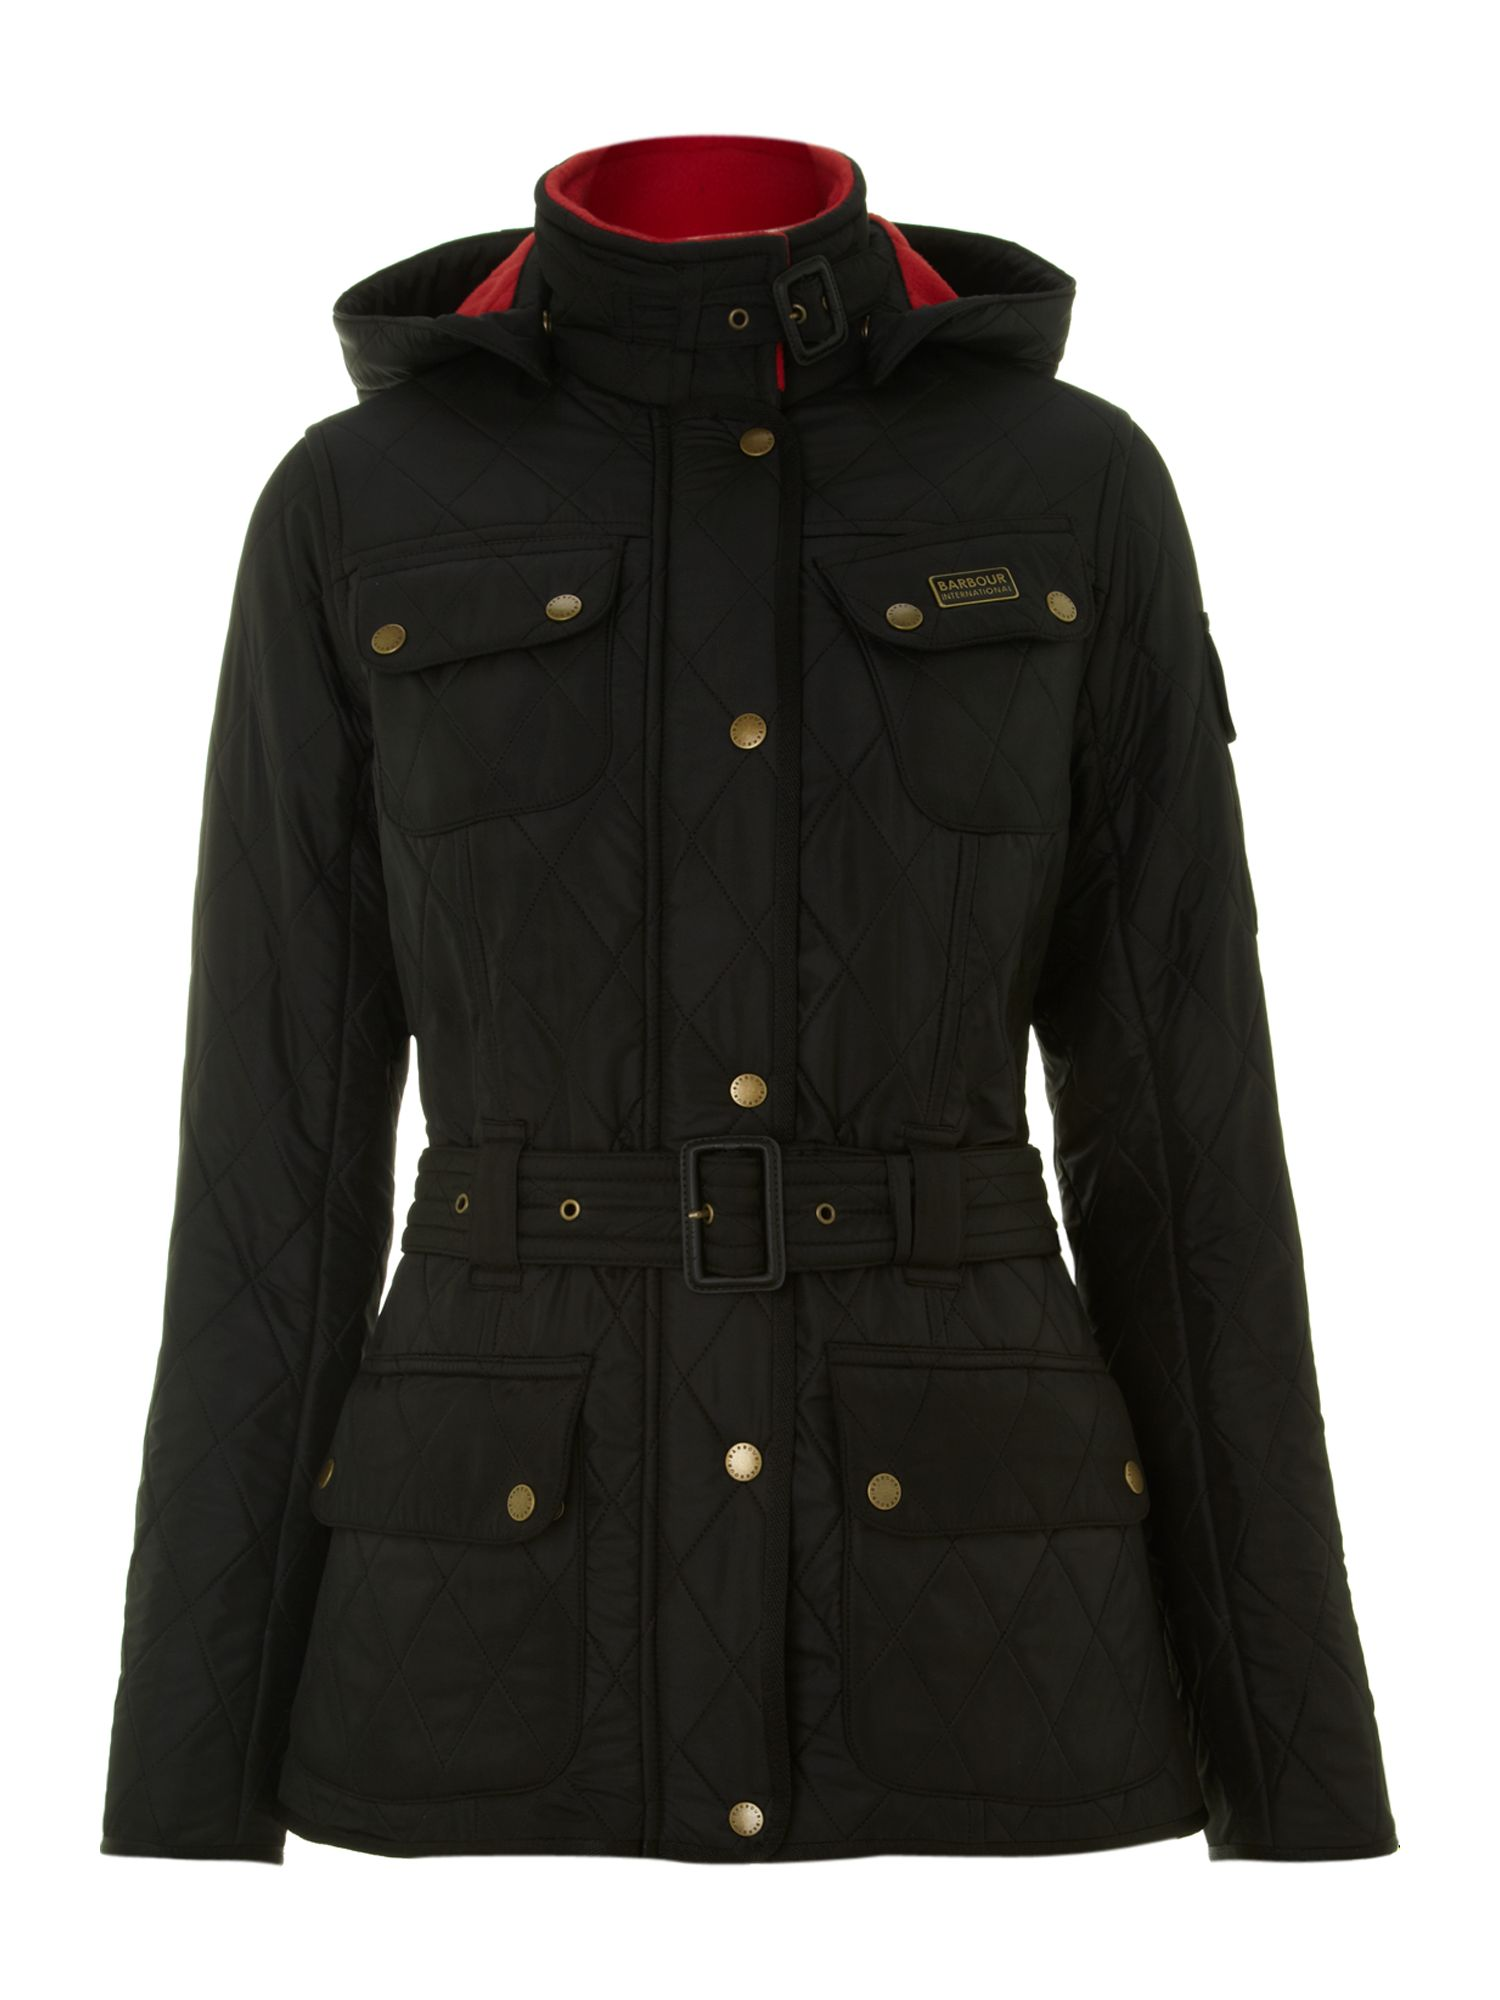 Where to buy a barbour jacket